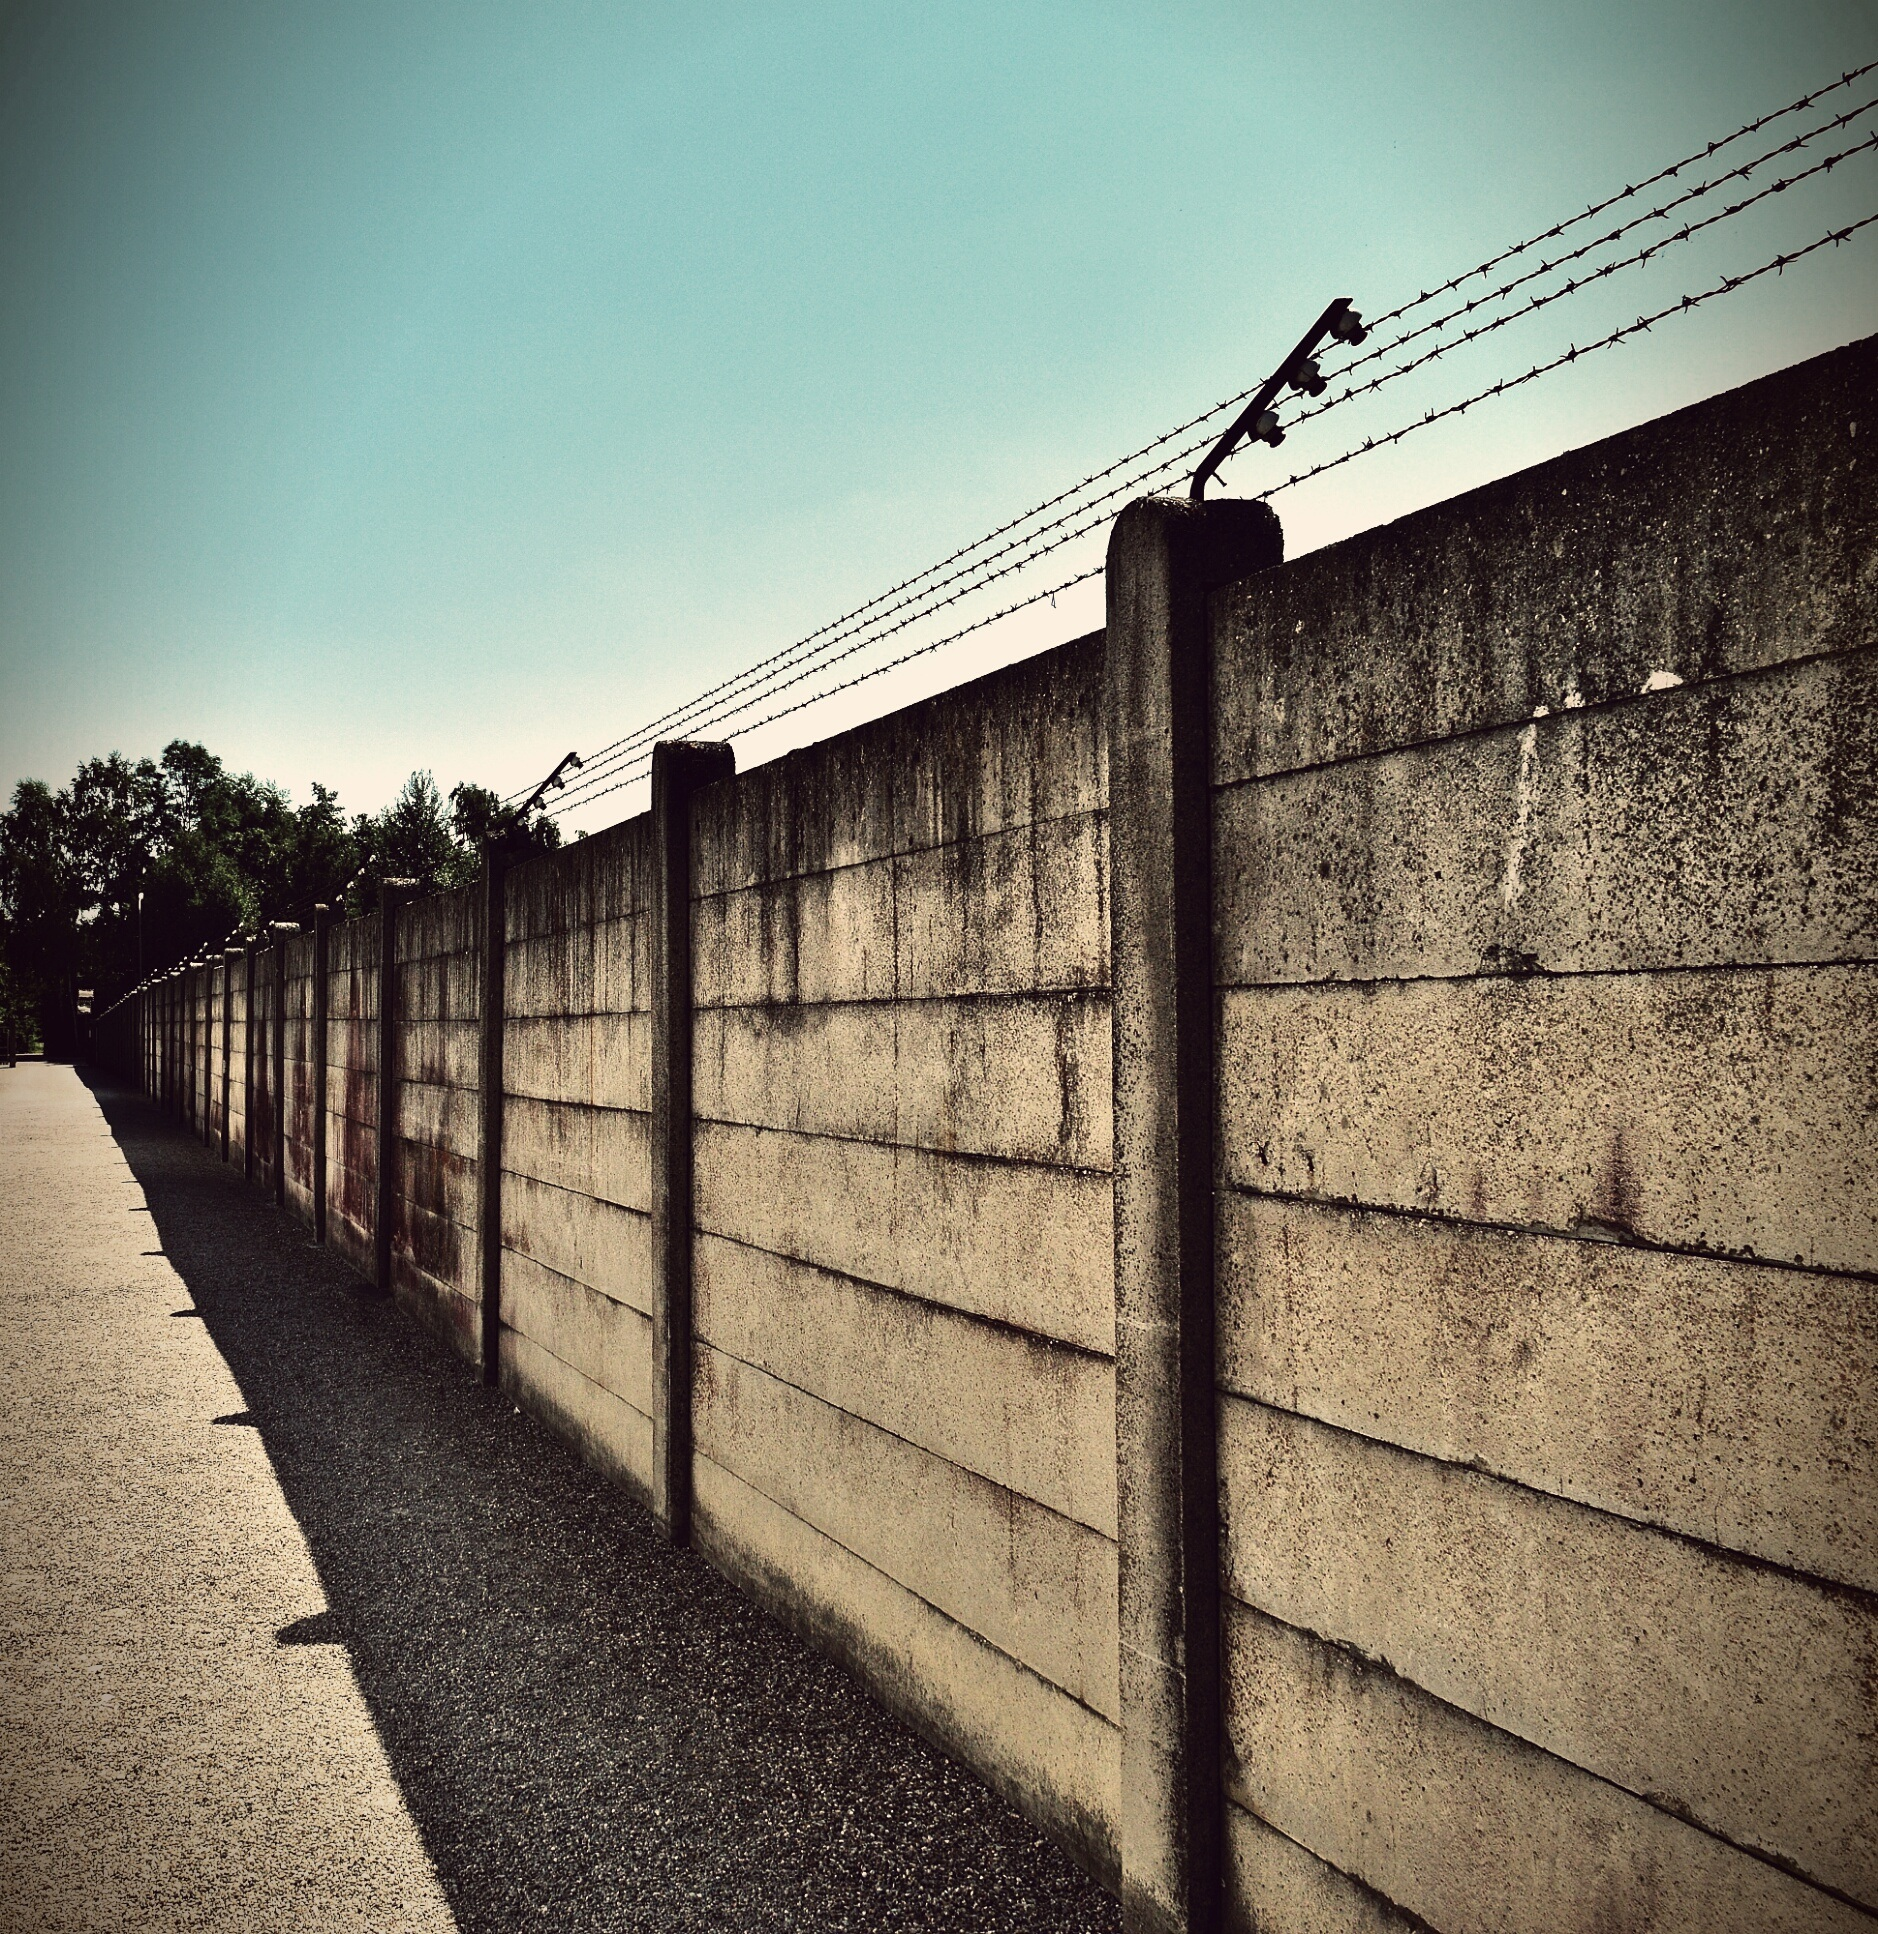 Beige and black concrete wall with barbwire on top · free